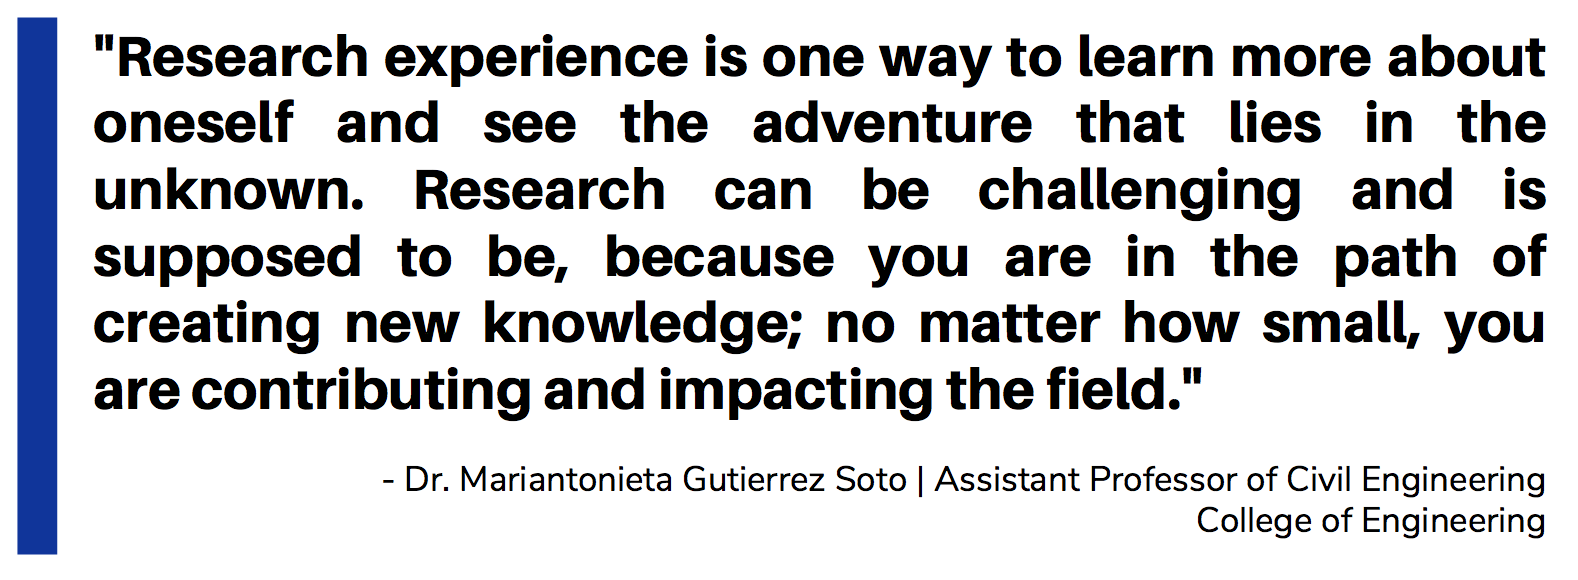 Quote_Gutierrez Soto_Research experience is one way to learn more about oneself and see the adventure that lies in the unknown. Research can be challenging and is supposed to be, because you are in the path of creating new knowledge; no matter how small, you are contributing and impacting the field.